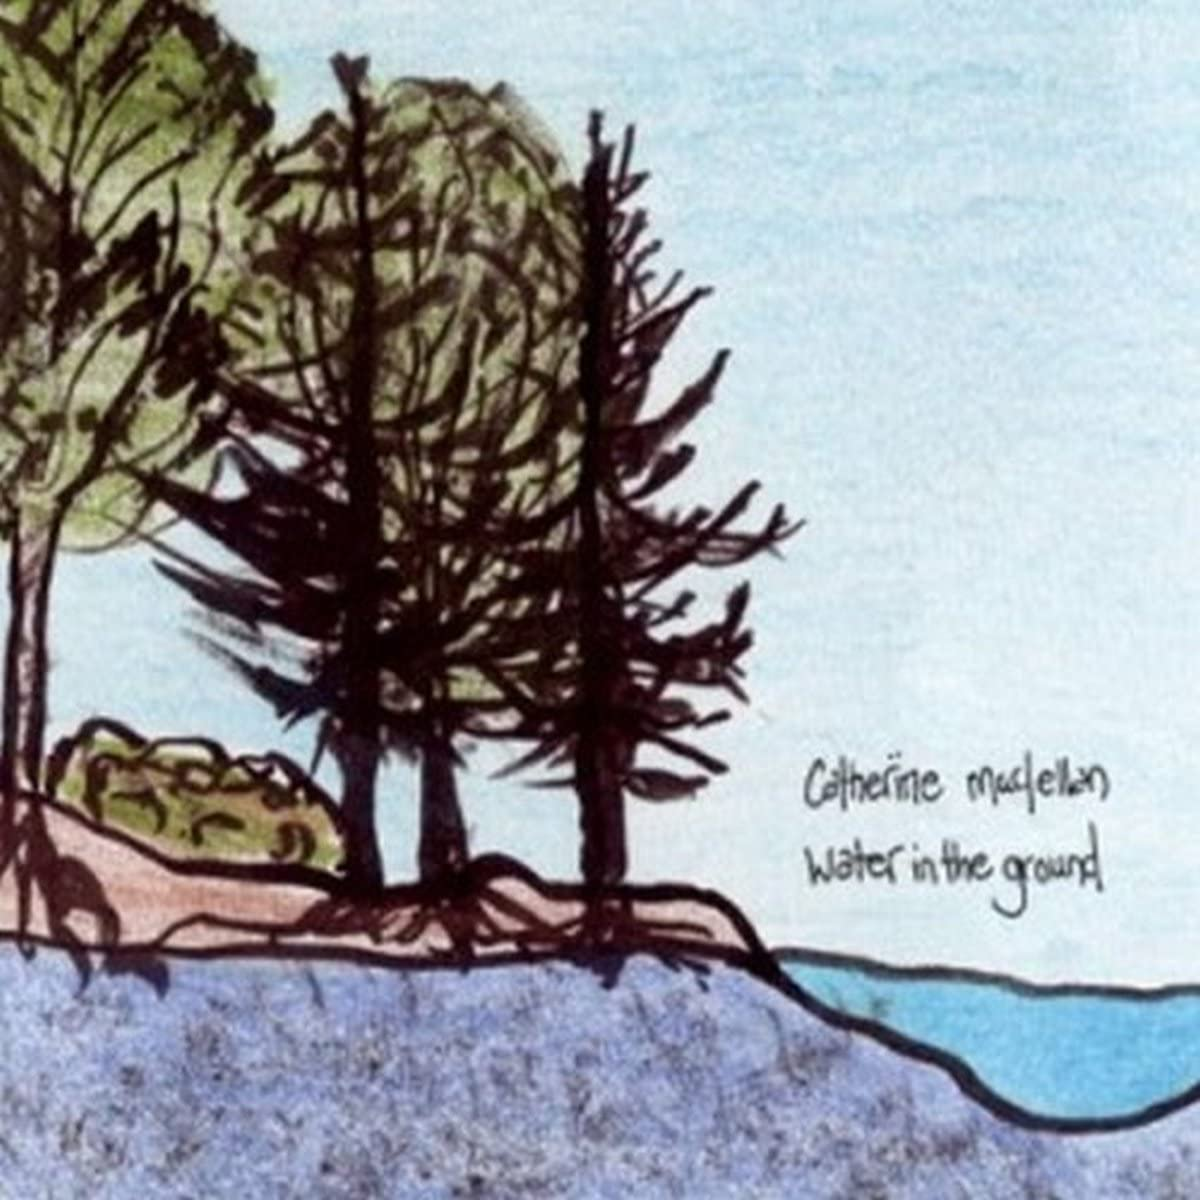 MacLellan, Catherine/Water In The Ground [CD]